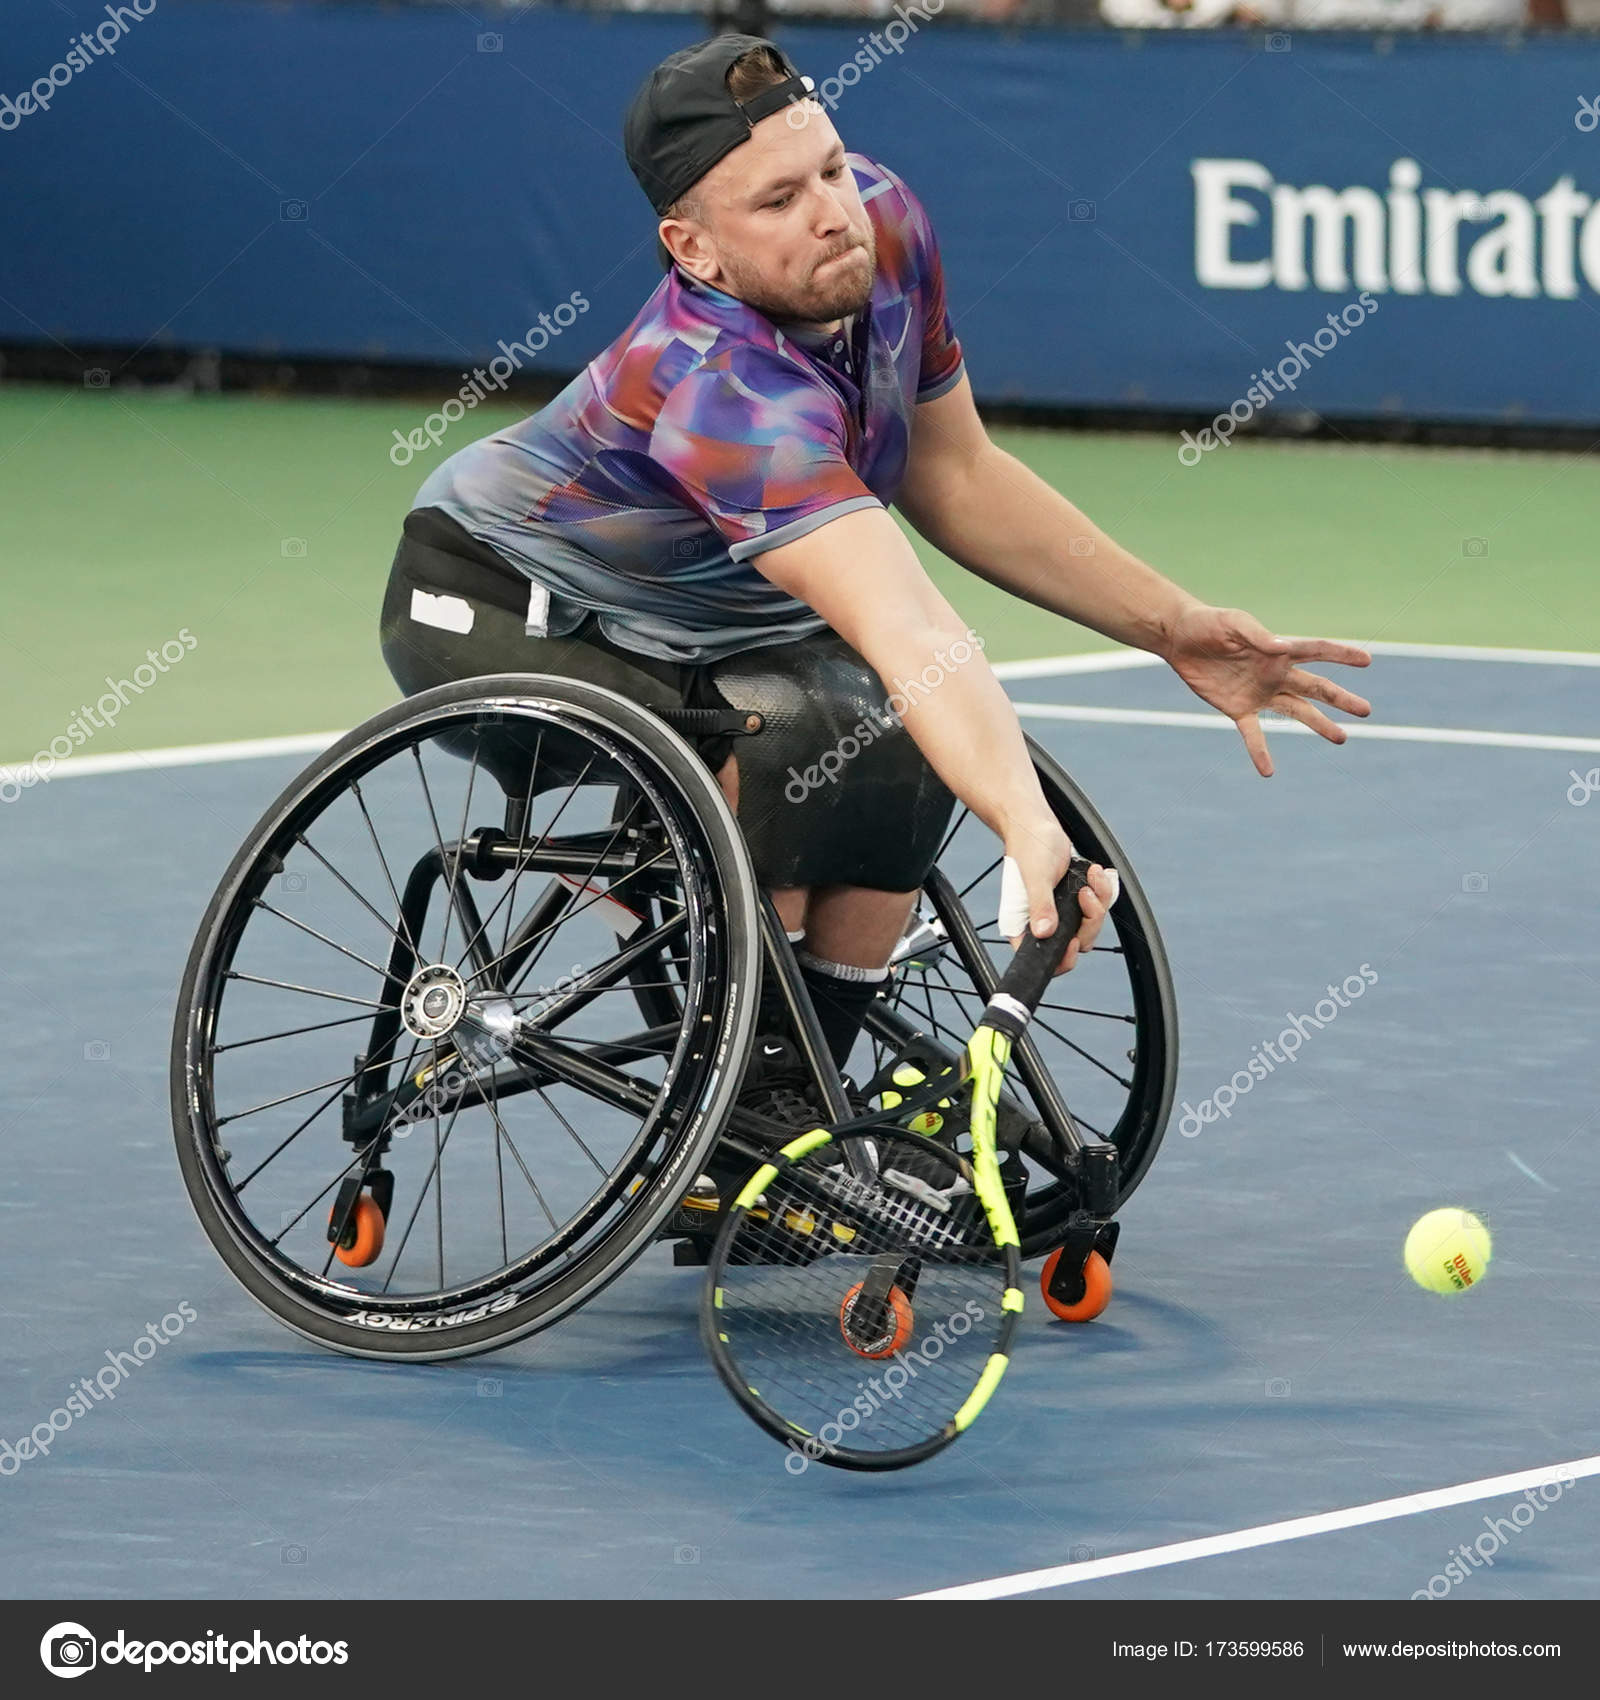 wheelchair quad best place to buy an office chair tennis player dylan alcott of australia in action during his singles semifinal match